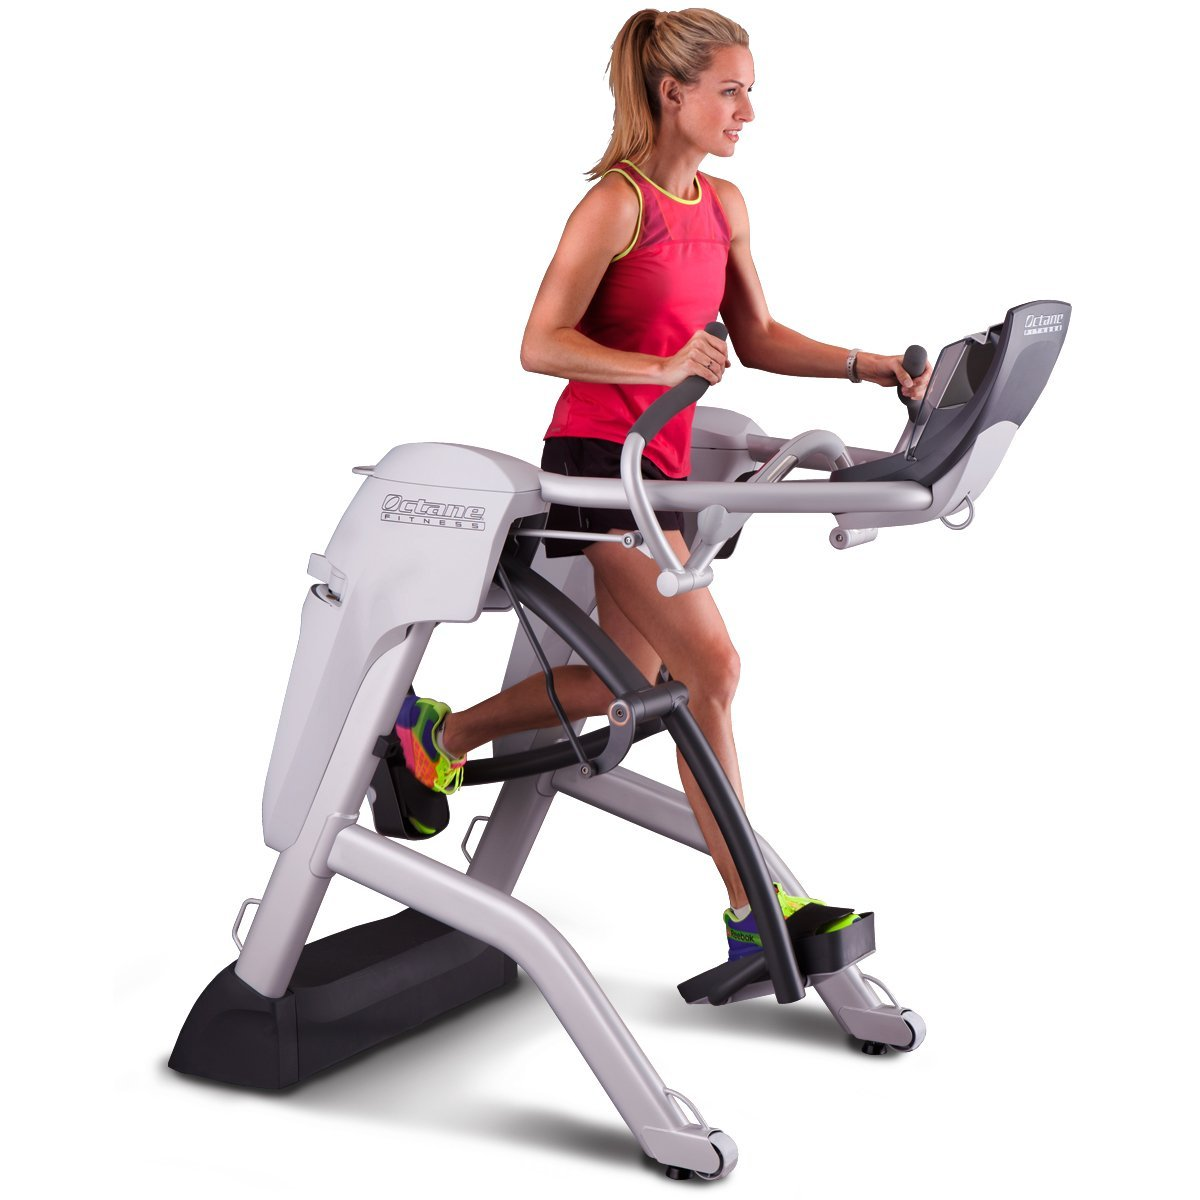 Octane Fitness ZR7 Elliptical